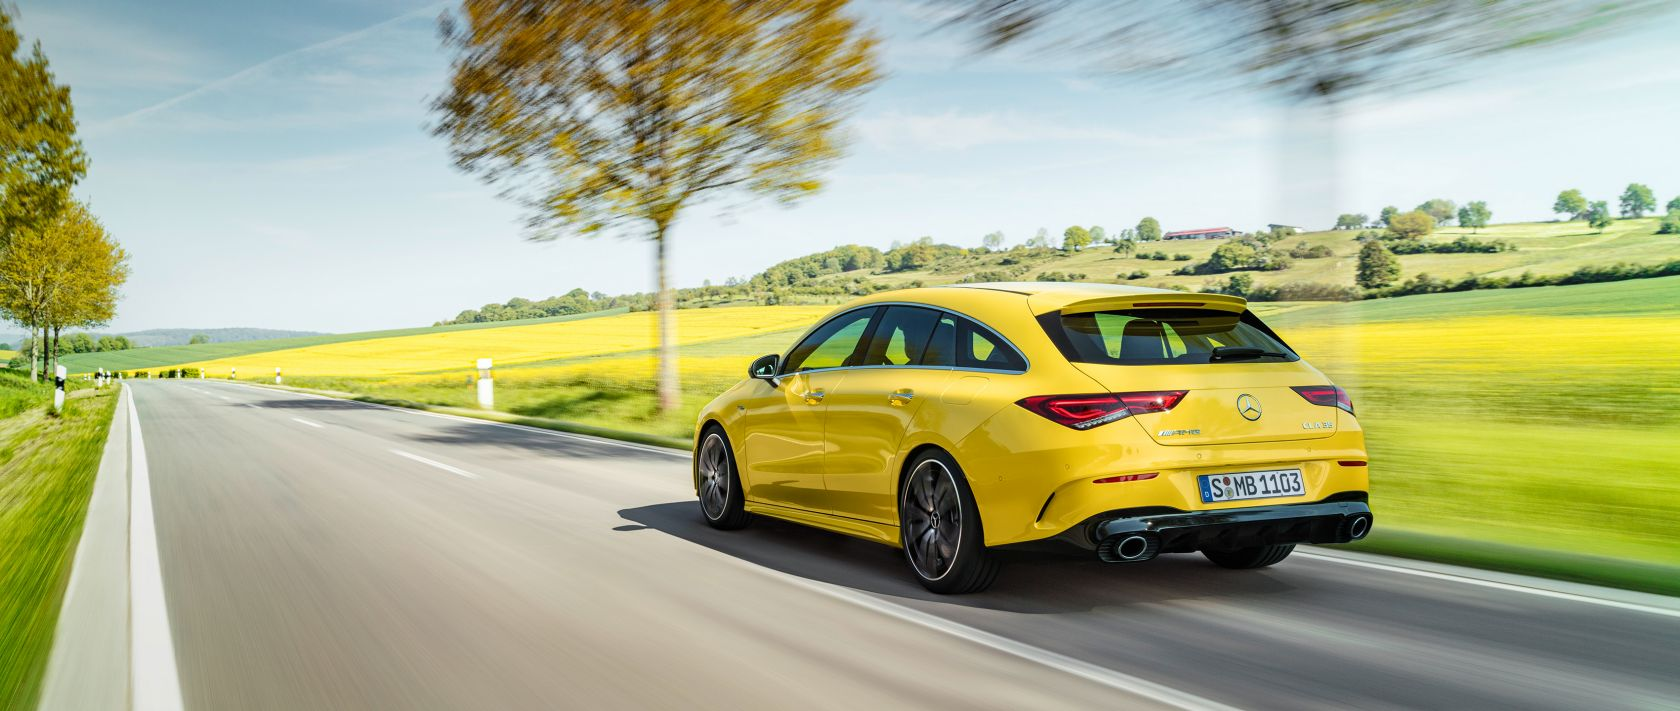 The new 2019 Mercedes-AMG CLA 35 4MATIC Shooting Brake (X 118) in sun yellow in rear view on a country road.